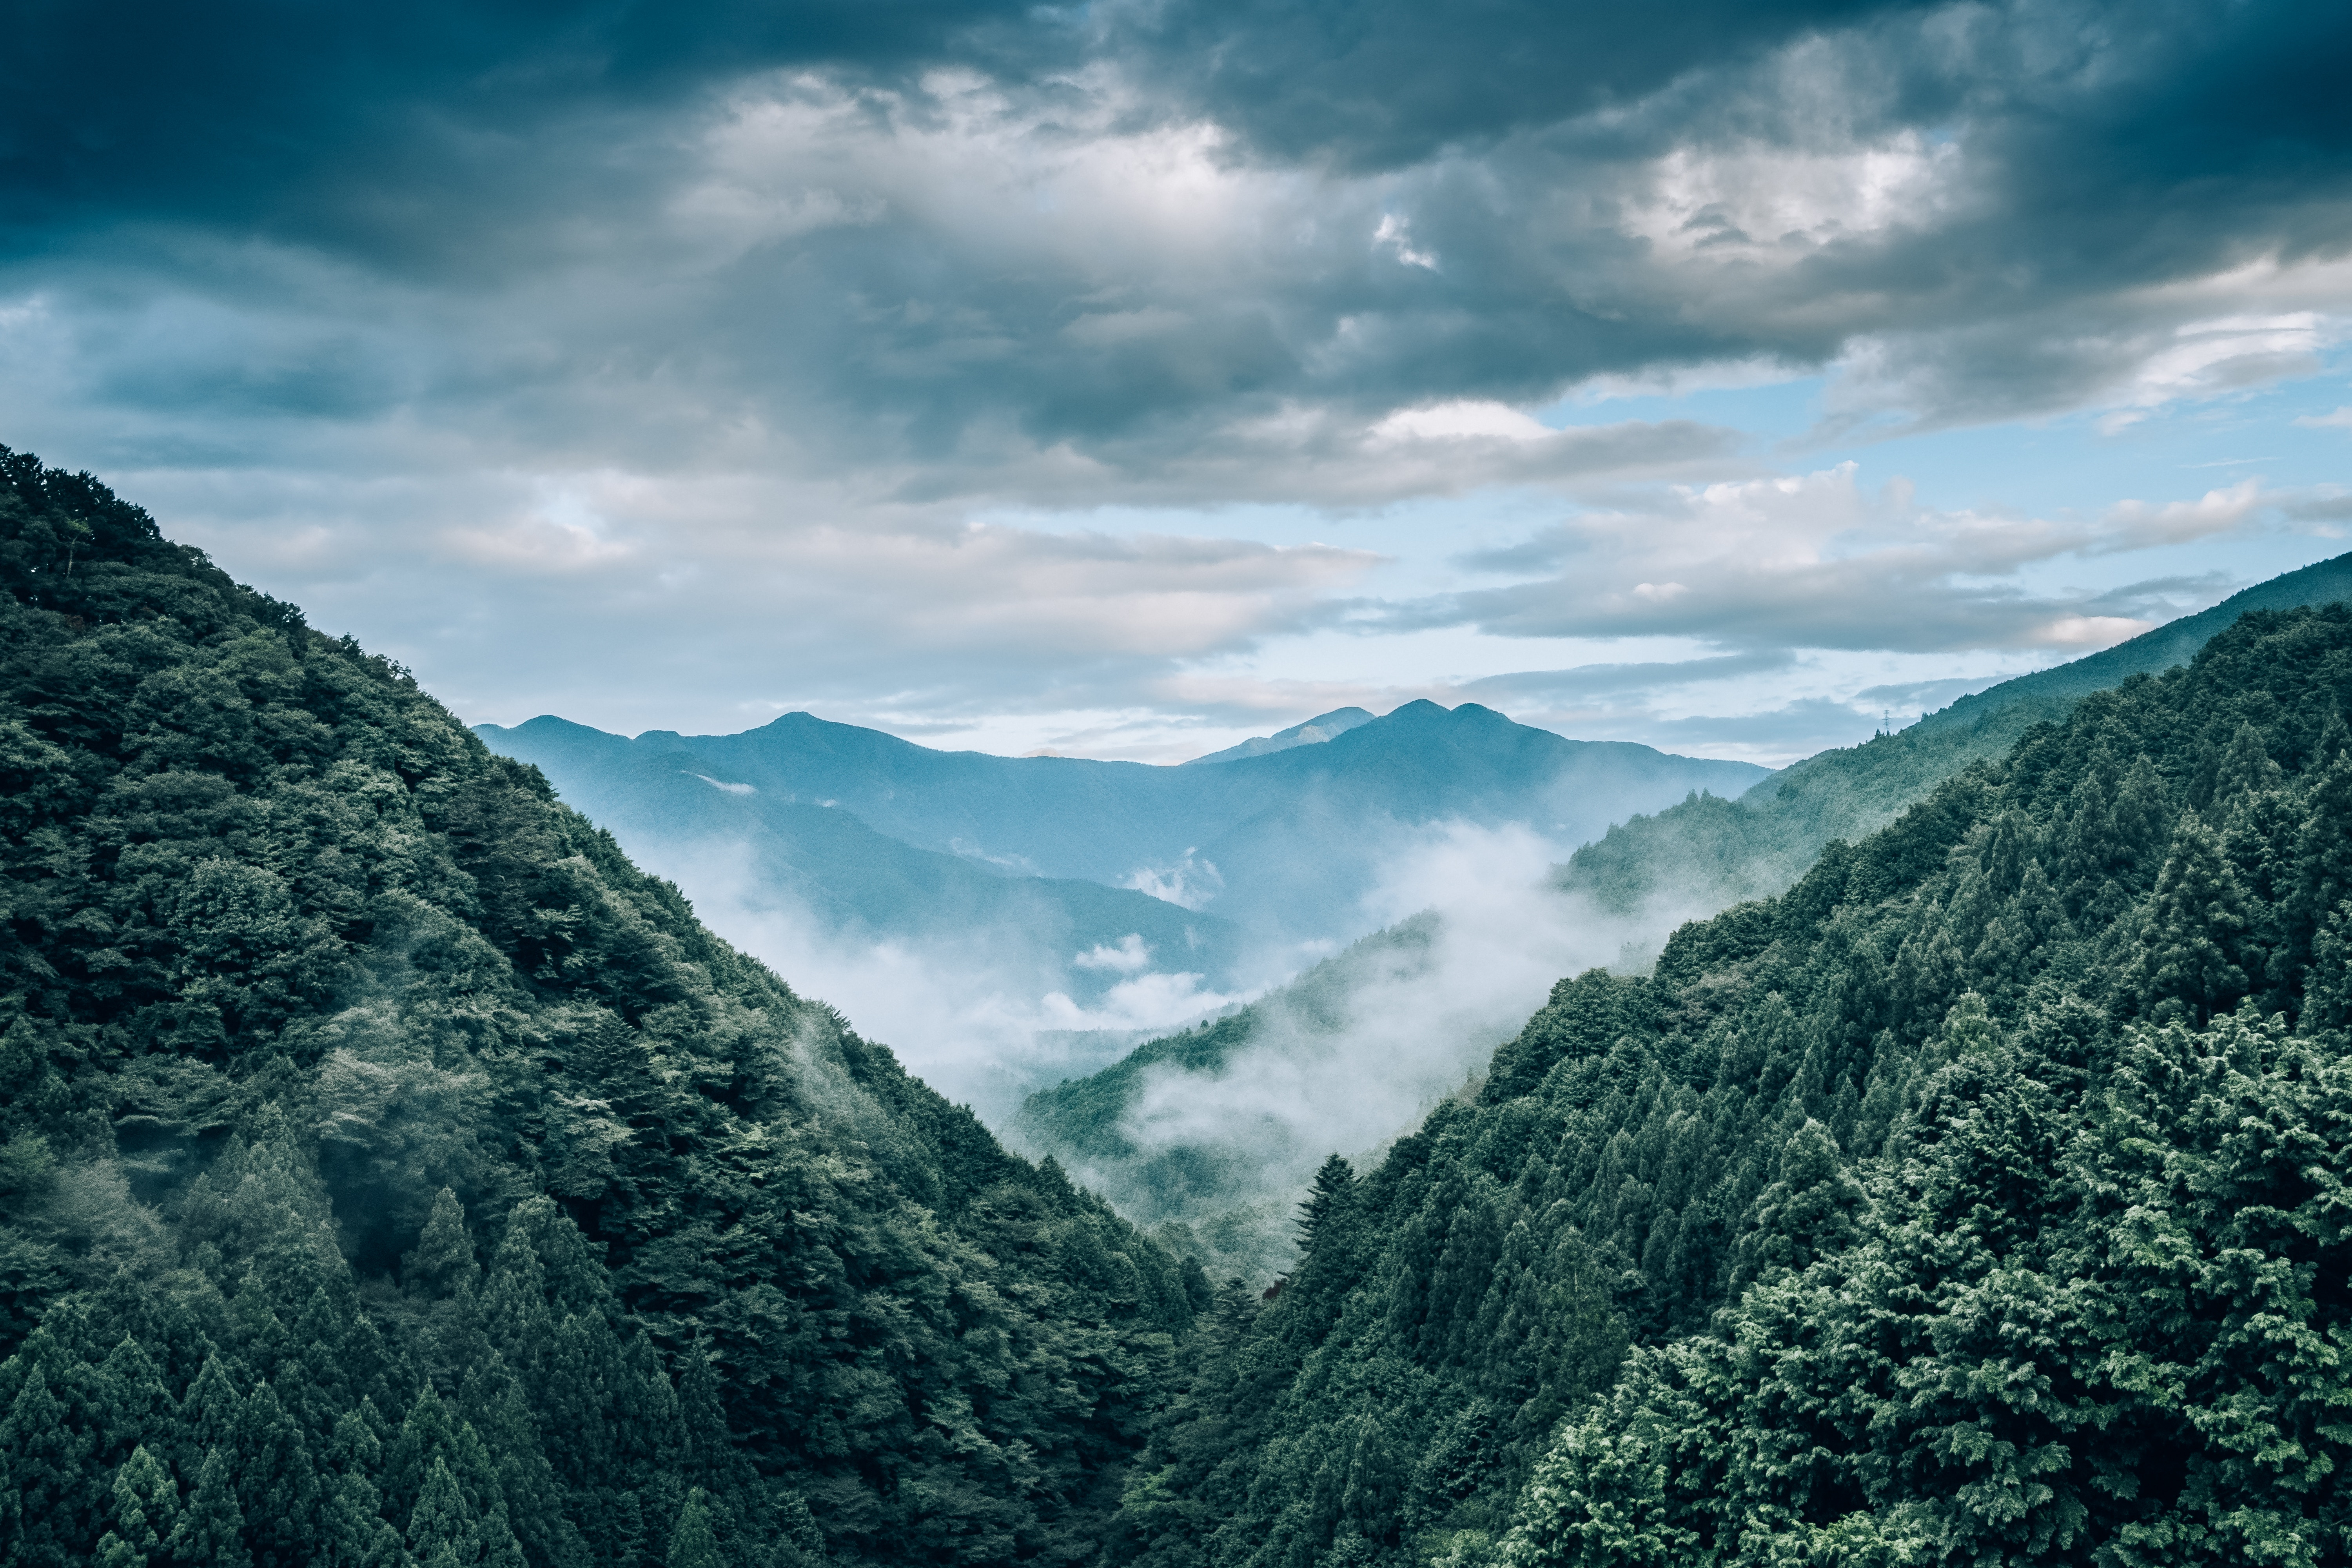 115683 free wallpaper 720x1520 for phone, download images Landscape, Nature, Trees, Mountains, View From Above, Fog 720x1520 for mobile